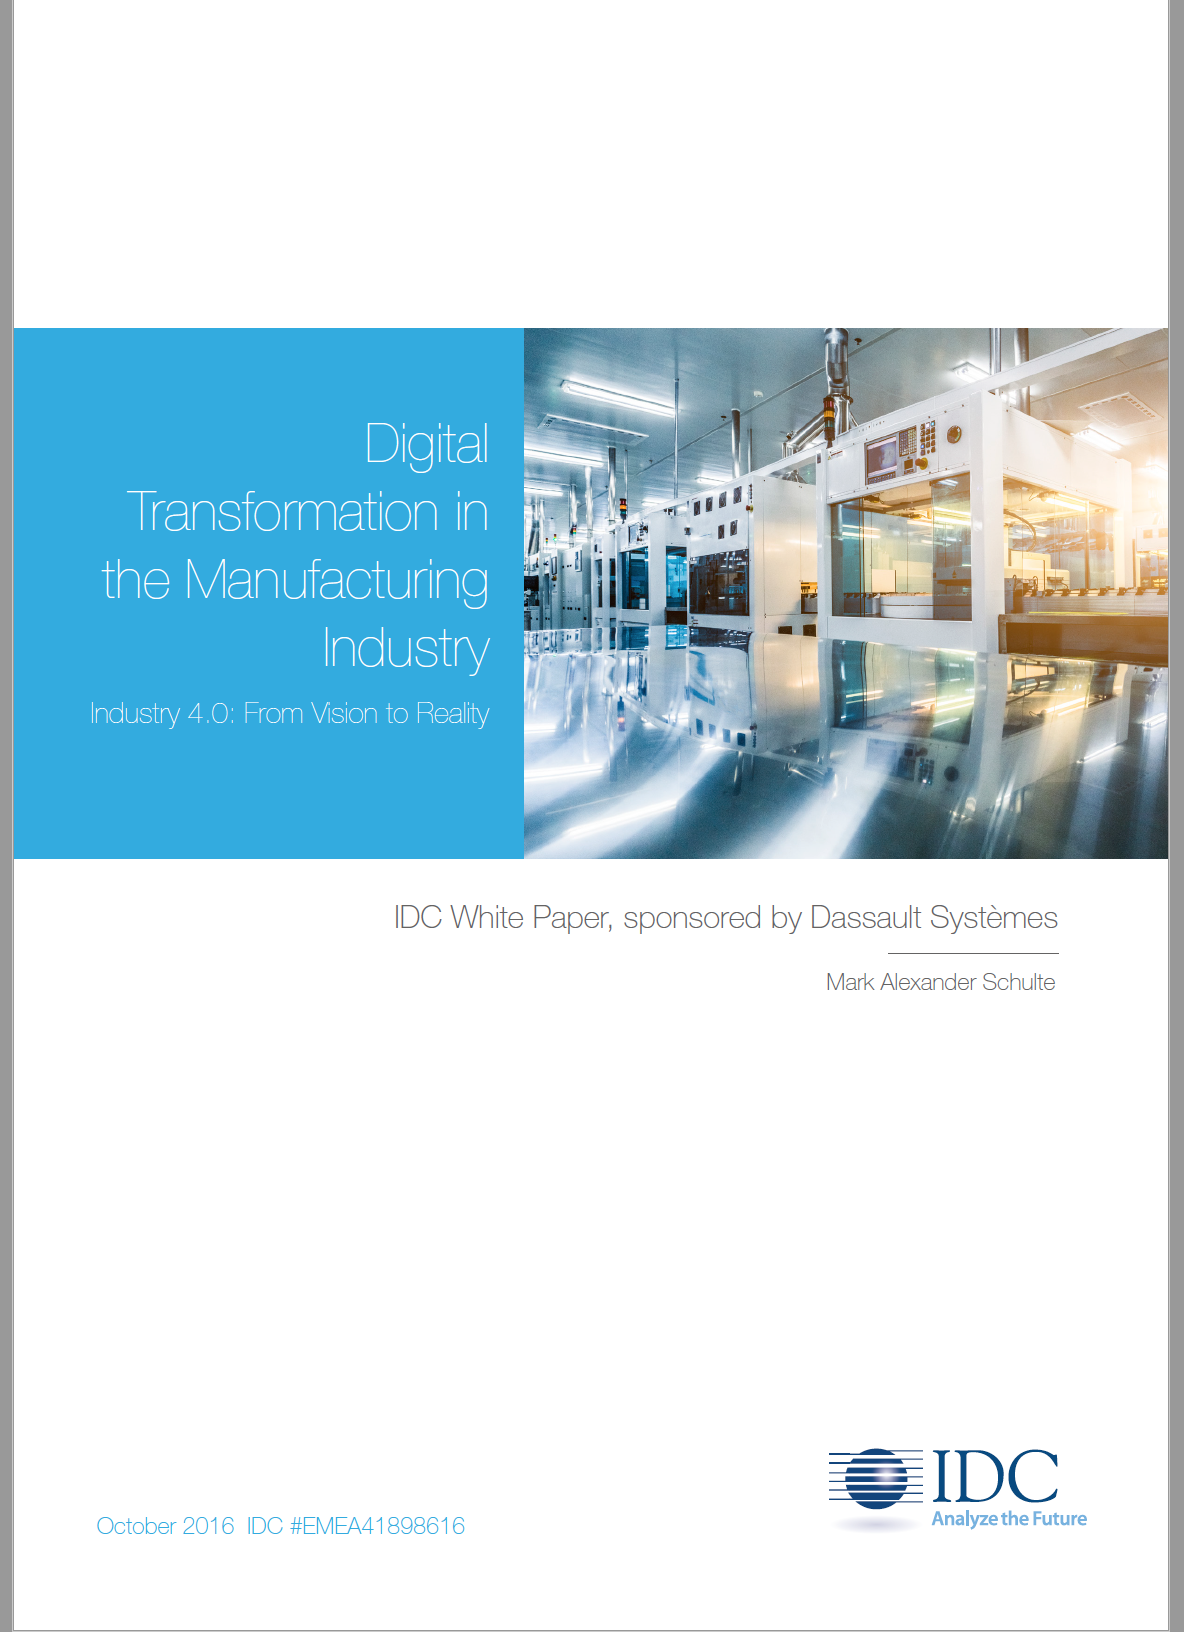 Digital Transformation in the Manufacturing Industry Industry 4.0: From Vision to Reality Front Cover